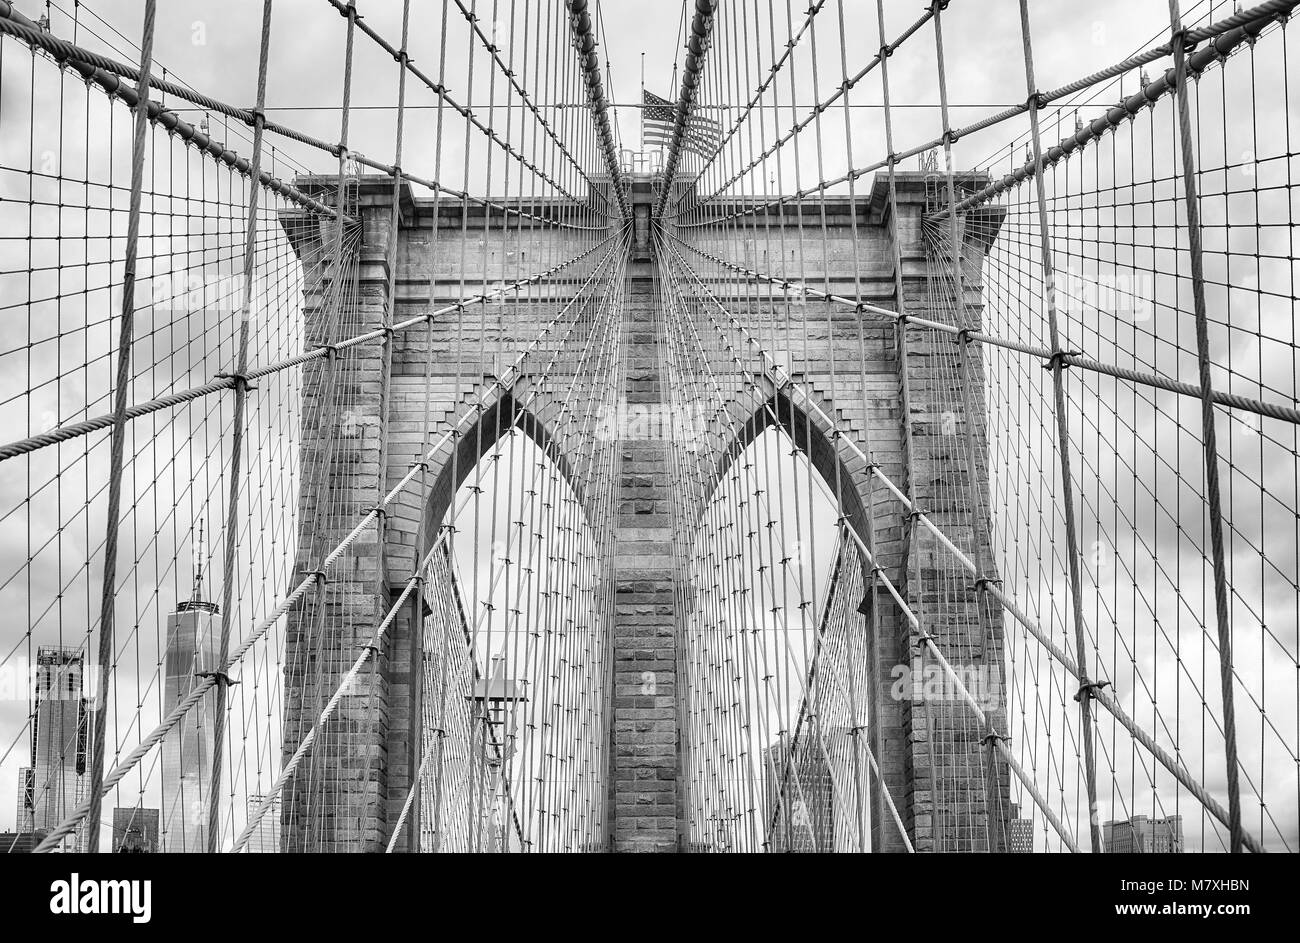 Black and white picture of the Brooklyn Bridge, New York City, USA. - Stock Image